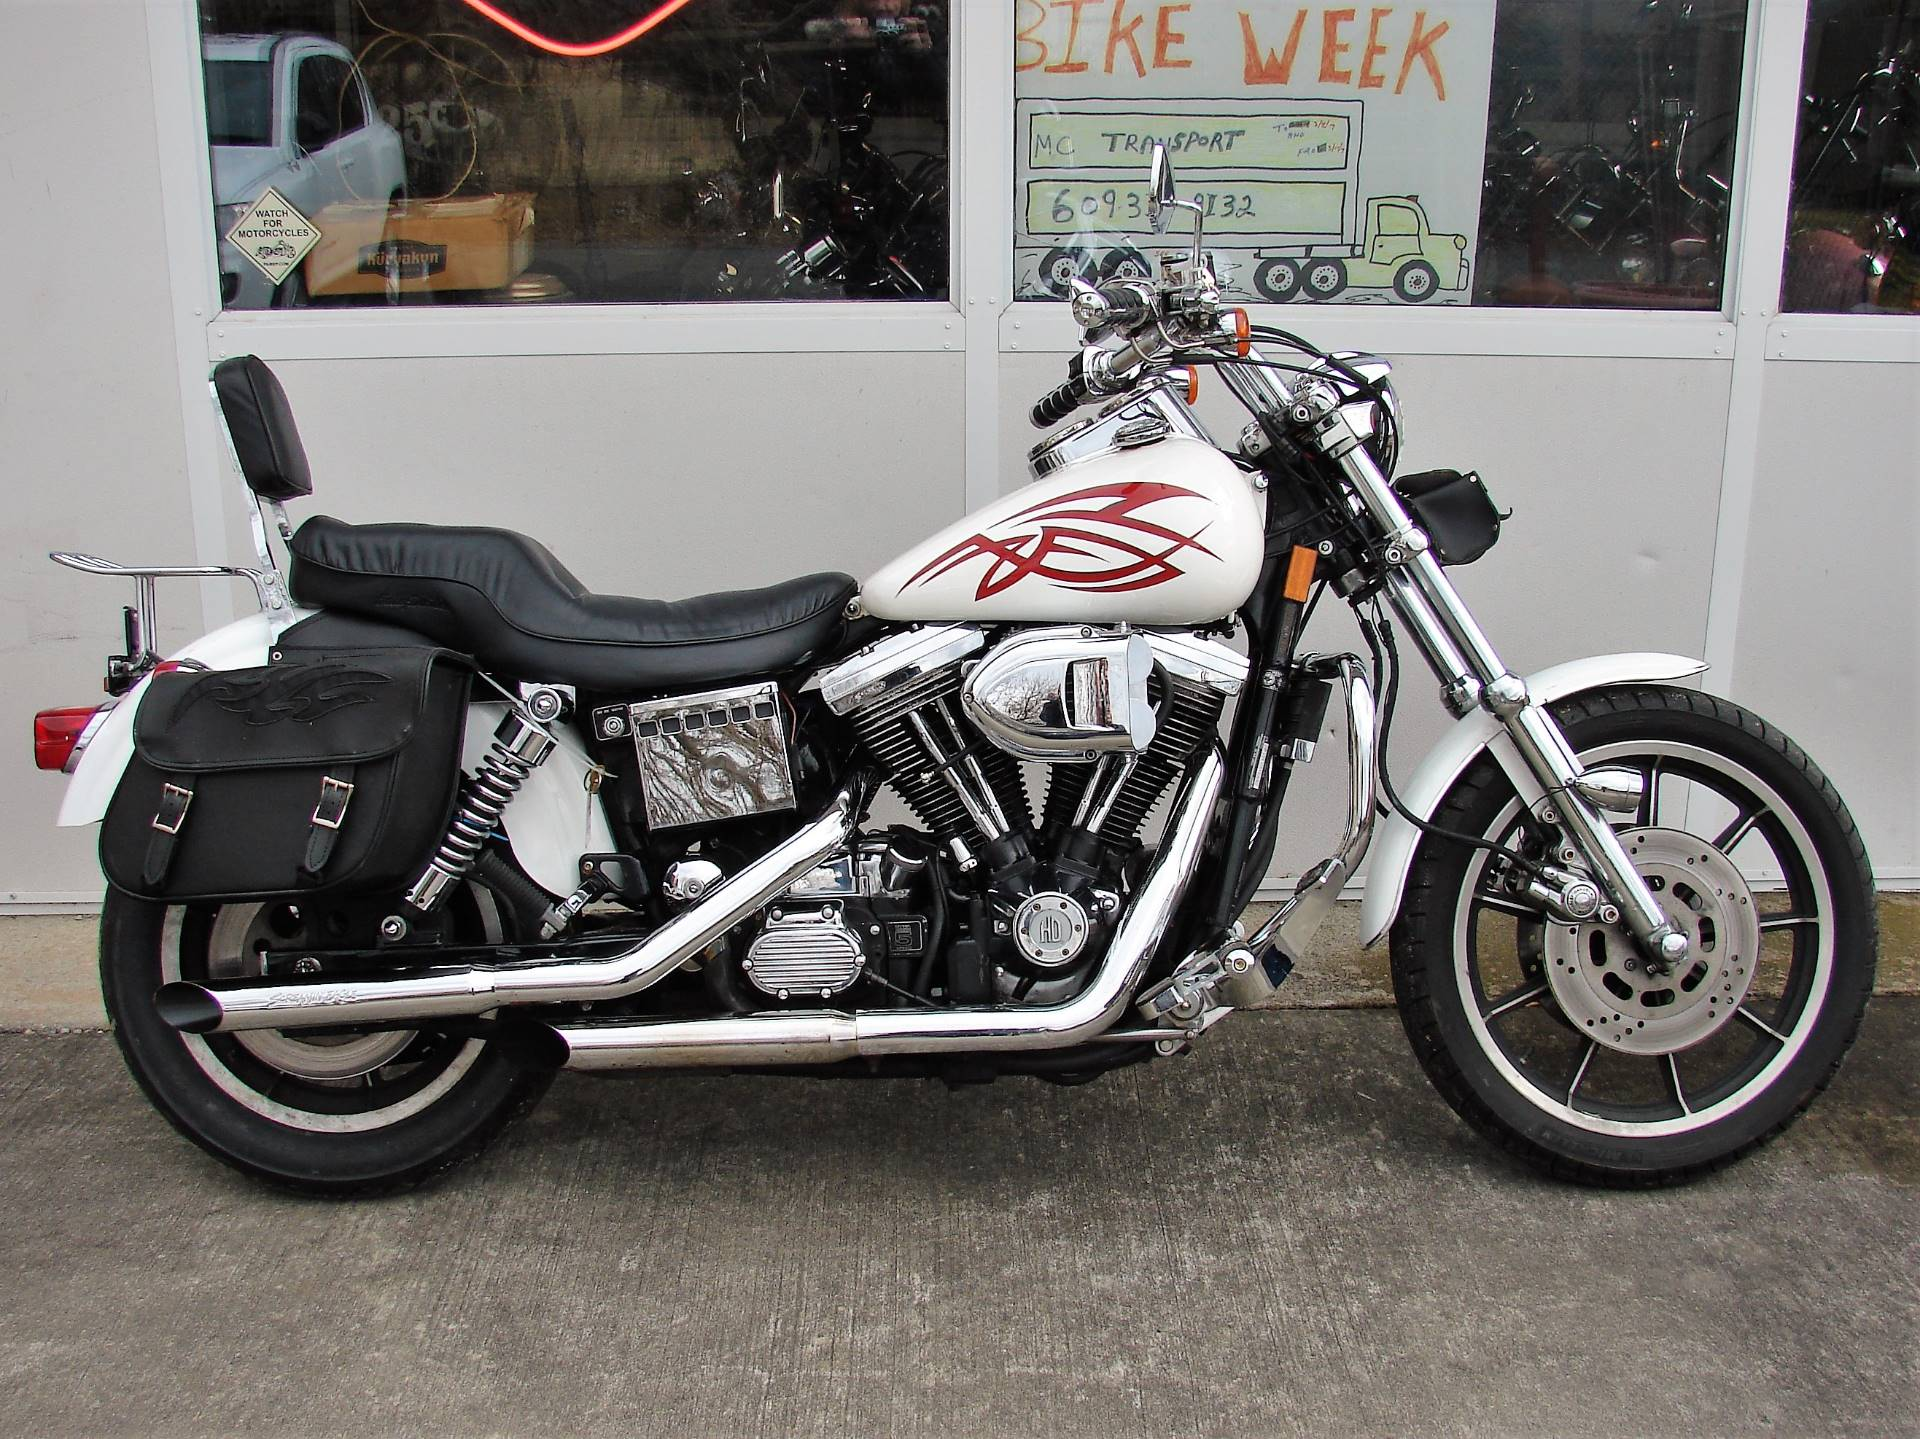 1995 Harley-Davidson Harley FXDL Dyna Low Rider  (White with Red Tribal) in Williamstown, New Jersey - Photo 13